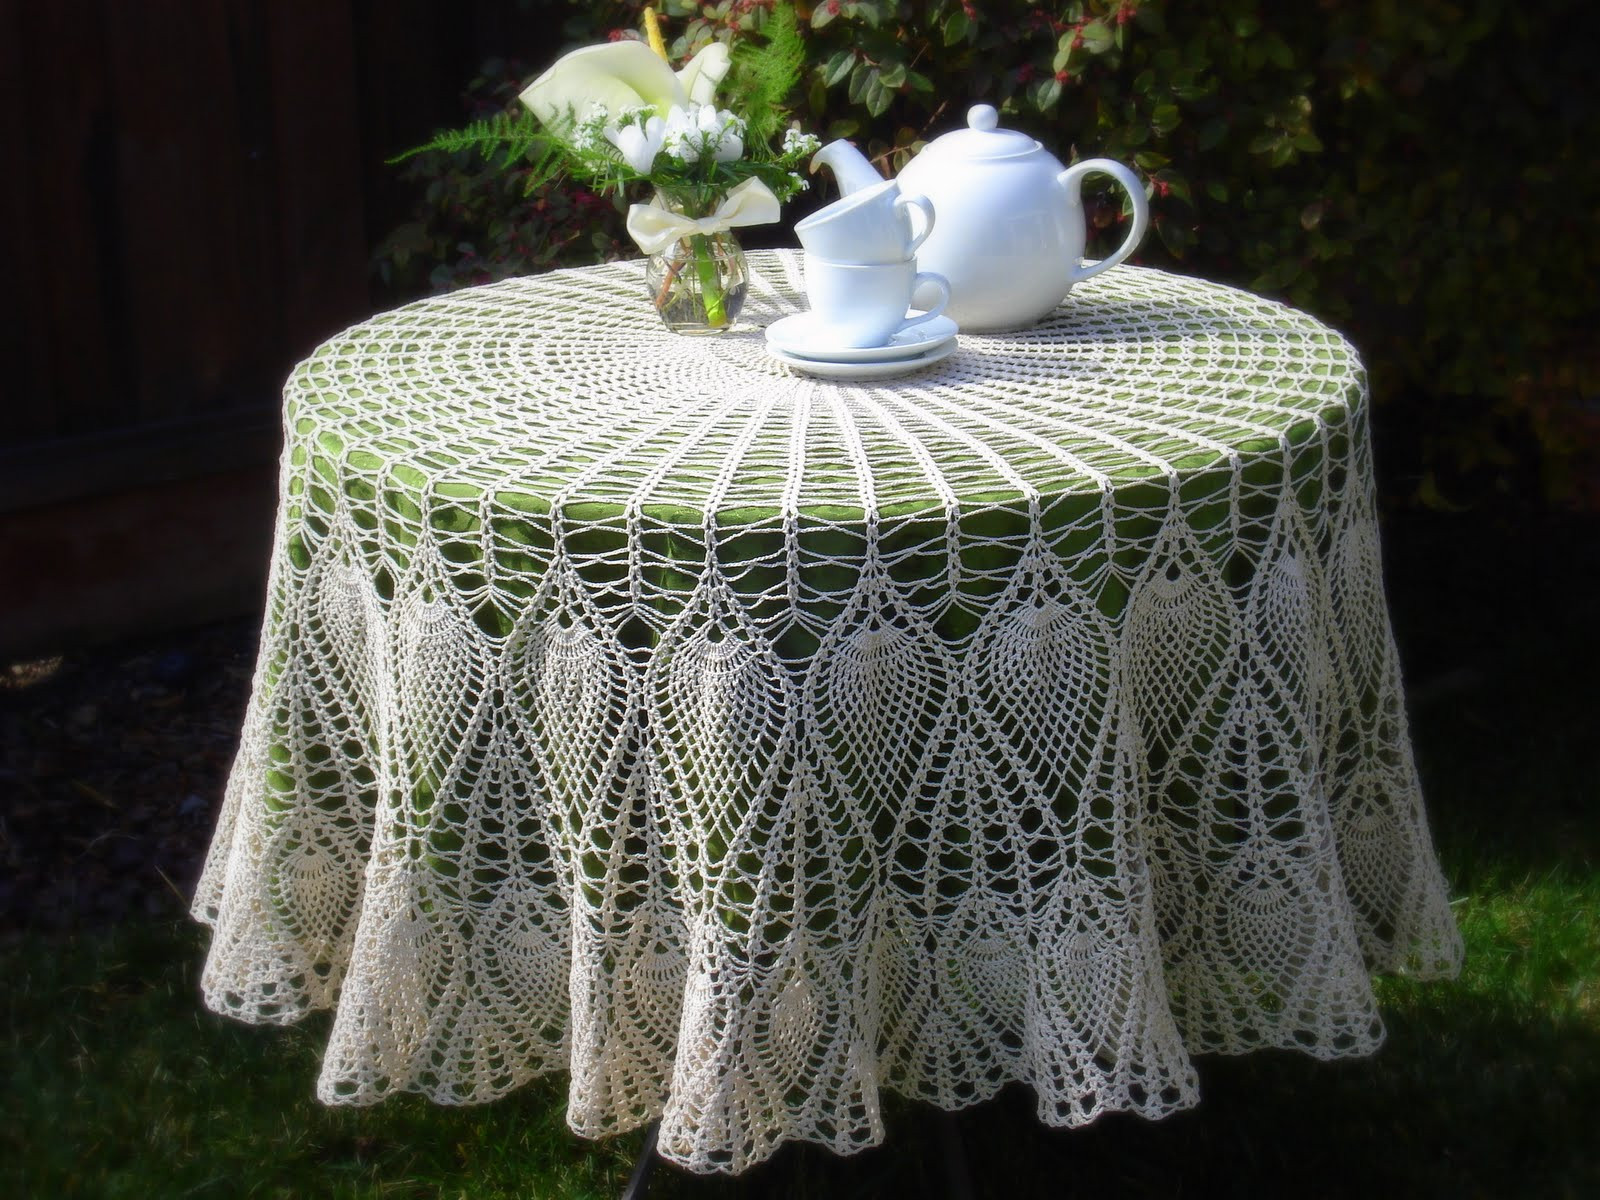 Crochet Round Tablecloth Unique Lacy Crochet Tablecloth Update Of Beautiful 41 Pictures Crochet Round Tablecloth